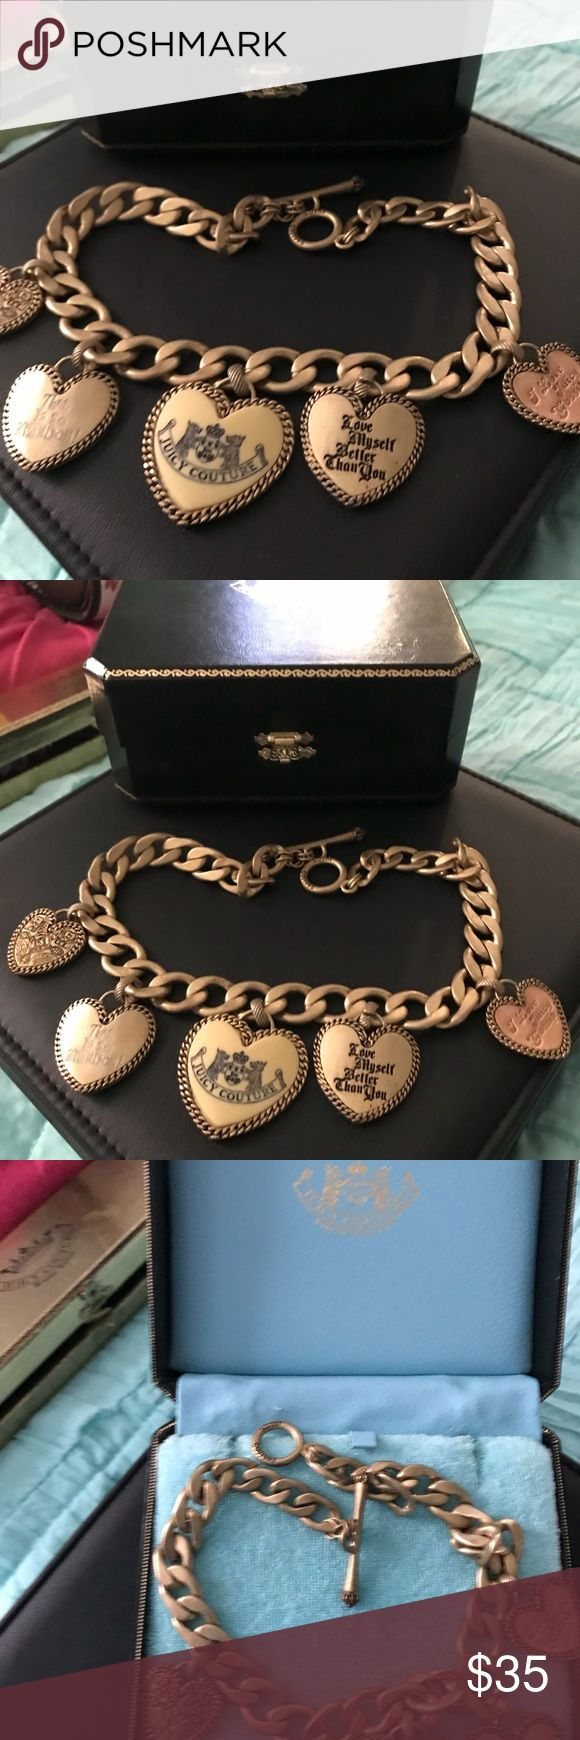 Juicy Couture chunky gold necklace w hearts Juicy Couture gold link chunky necklace with heart charms. This necklace was never worn. Original box included! Juicy Couture Jewelry Necklaces